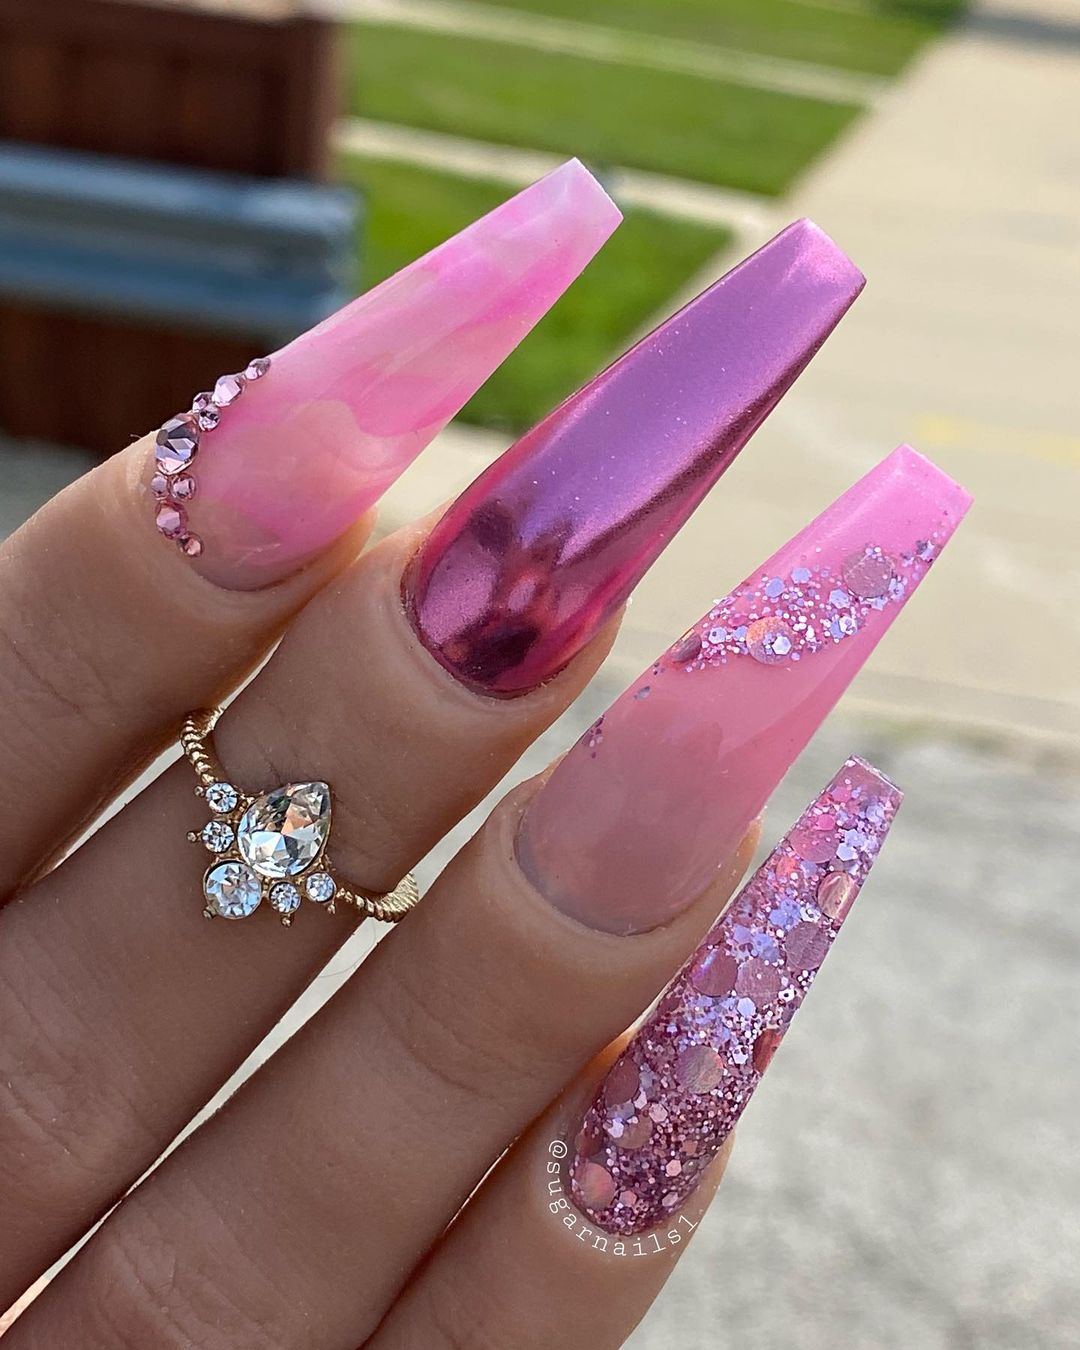 Pink chrome nails with glitter and rhinestones